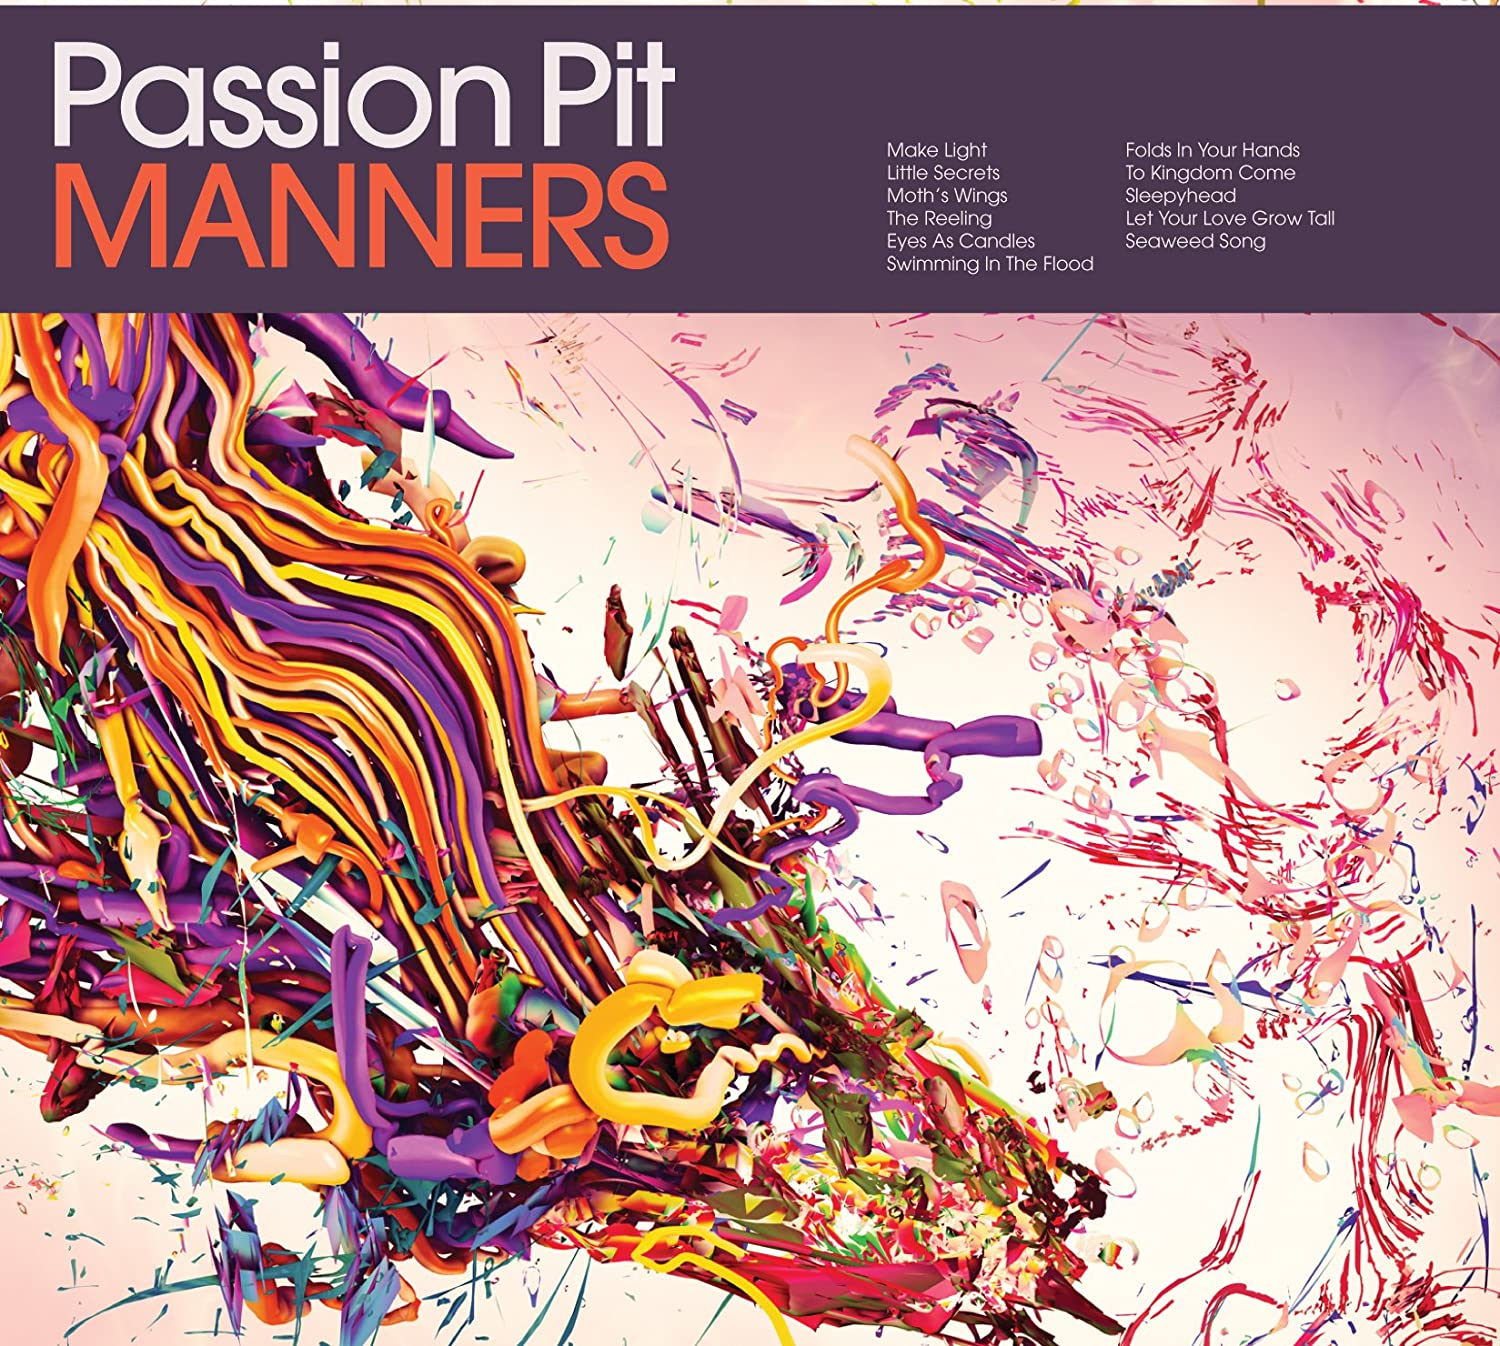 Manners Passion Passion Pit Manners